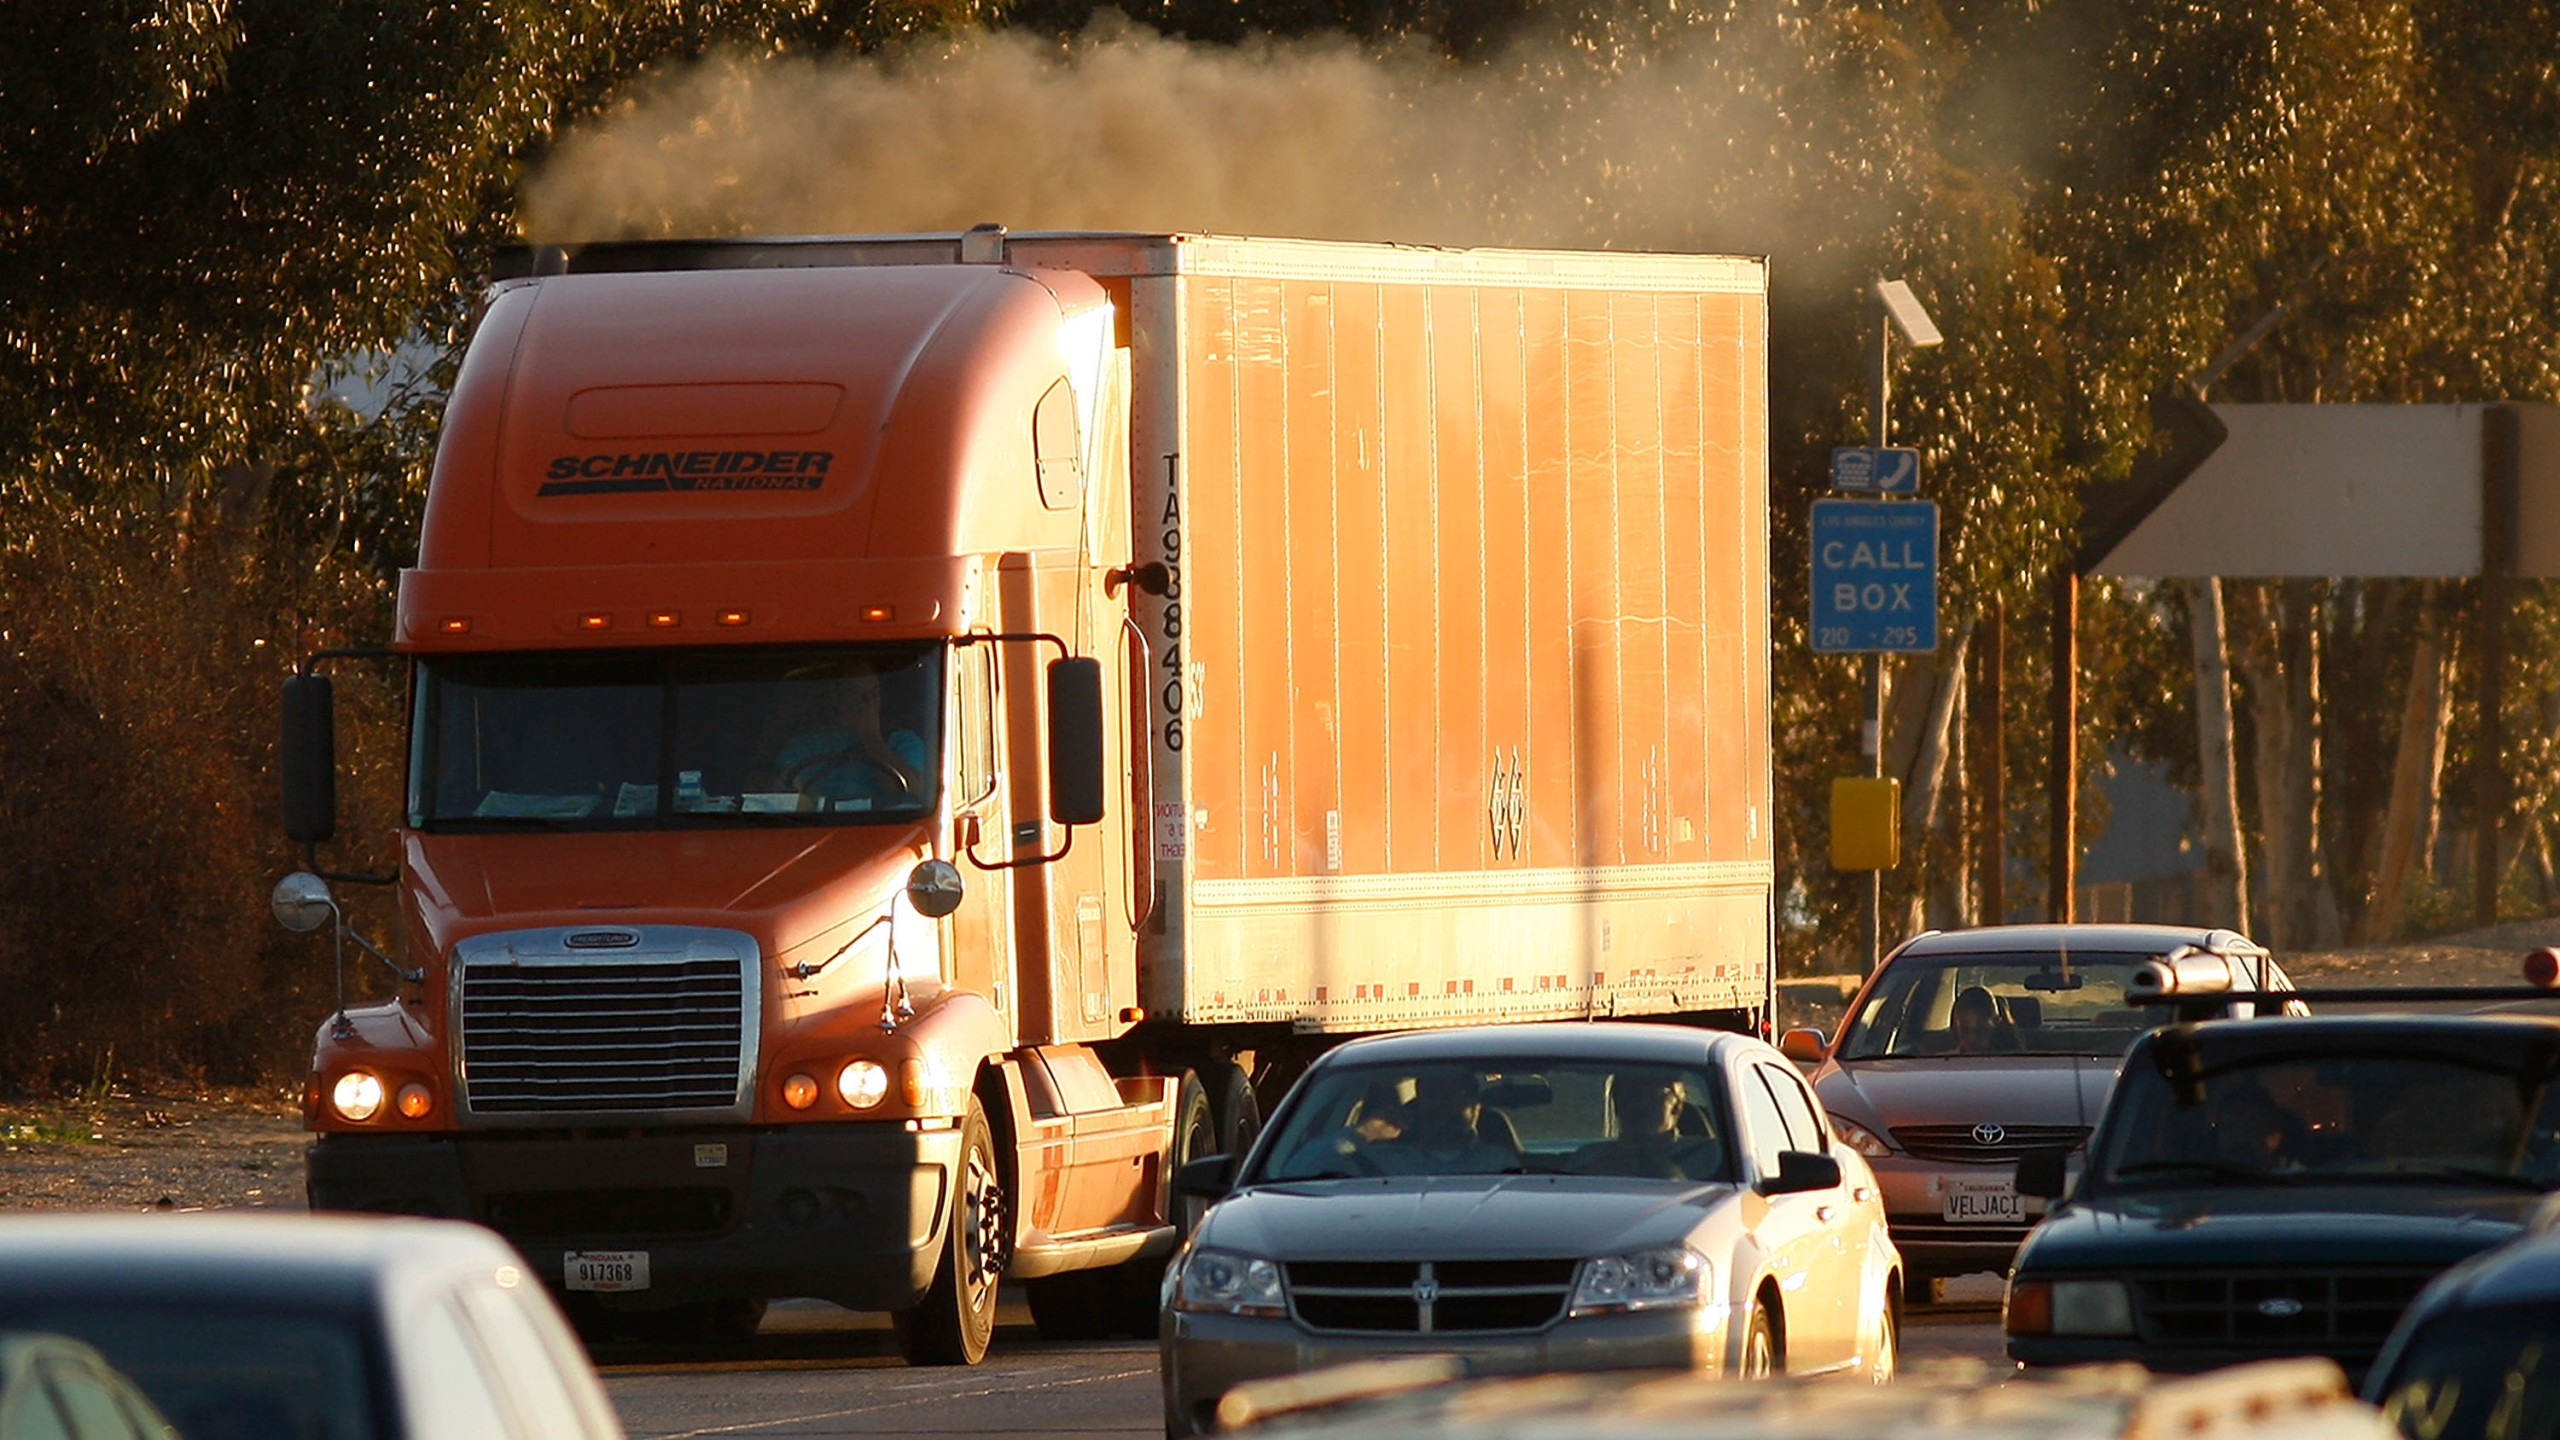 Diesel smoke spews from a truck as morning commuters travel the 210 freeway between Los Angeles and cities to the east on Dec. 1, 2009. (Credit: David McNew/Getty Images)